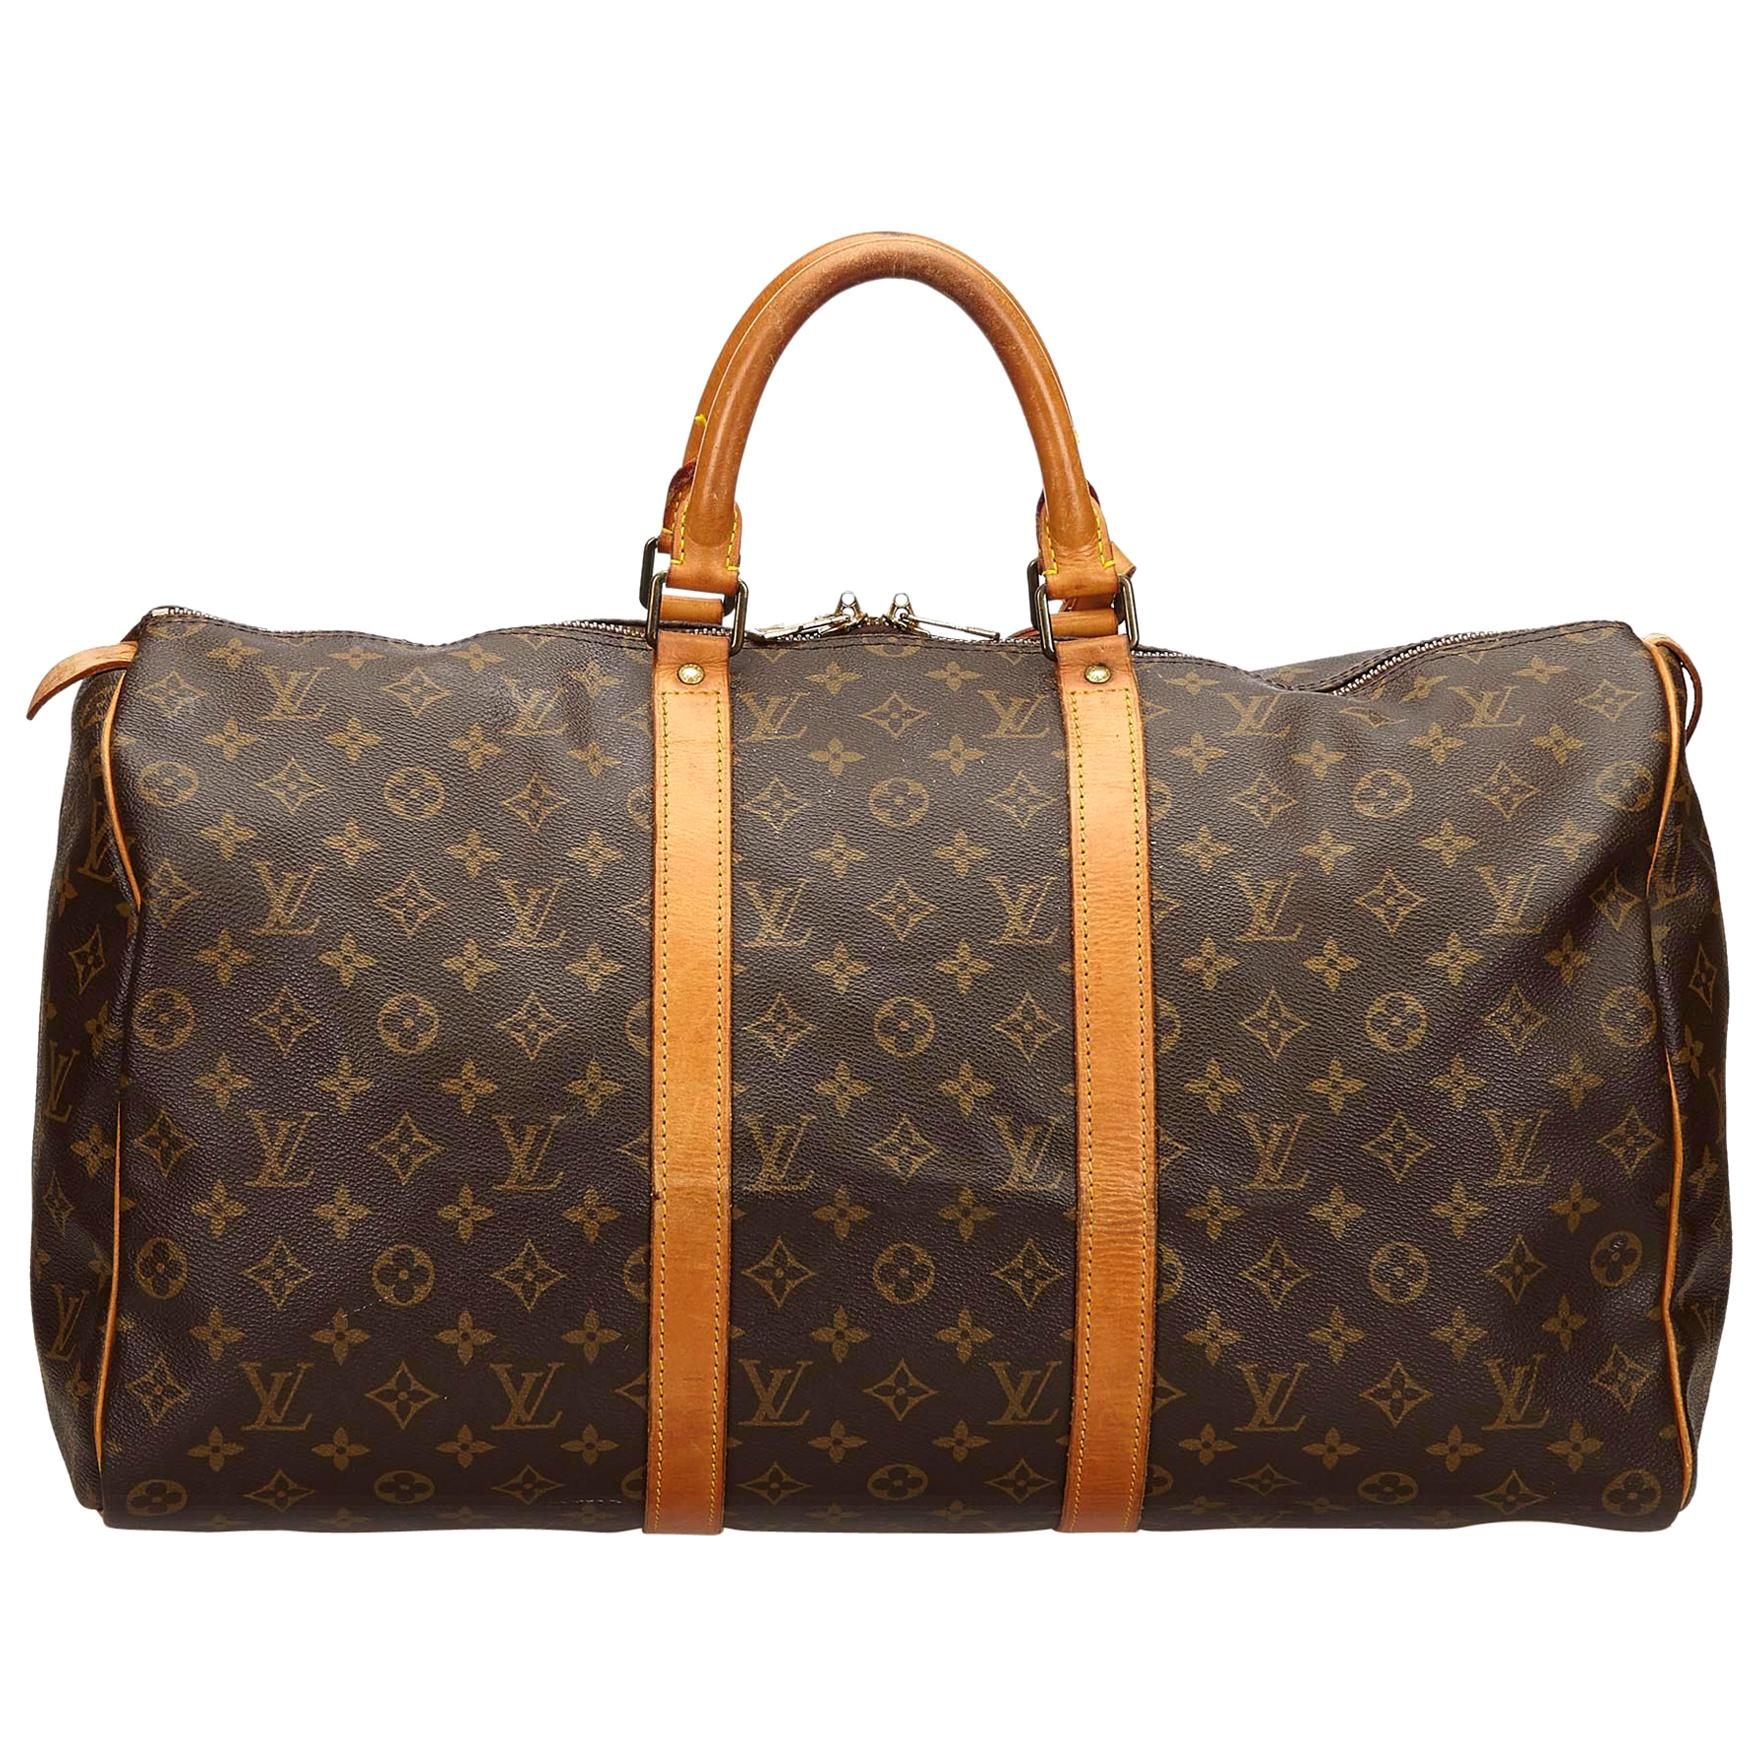 Vintage Louis Vuitton Luggage and Travel Bags - 267 For Sale at 1stdibs -  Page 3 6148f402ae